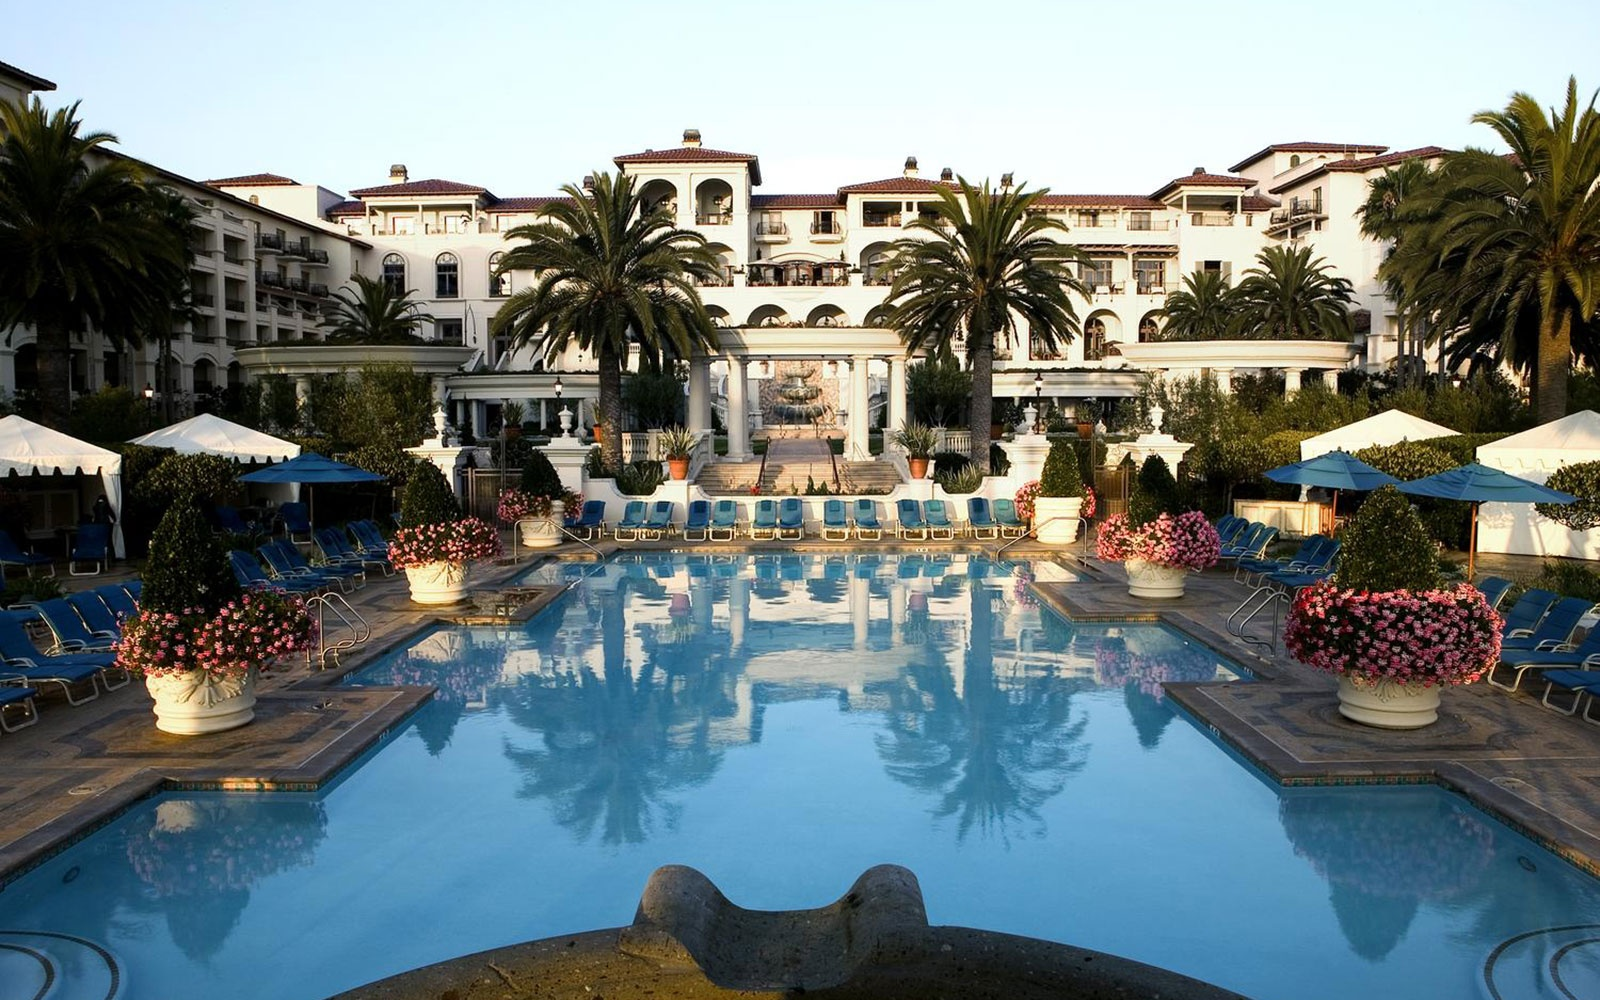 St. Regis Monarch Beach in Dana Point, California